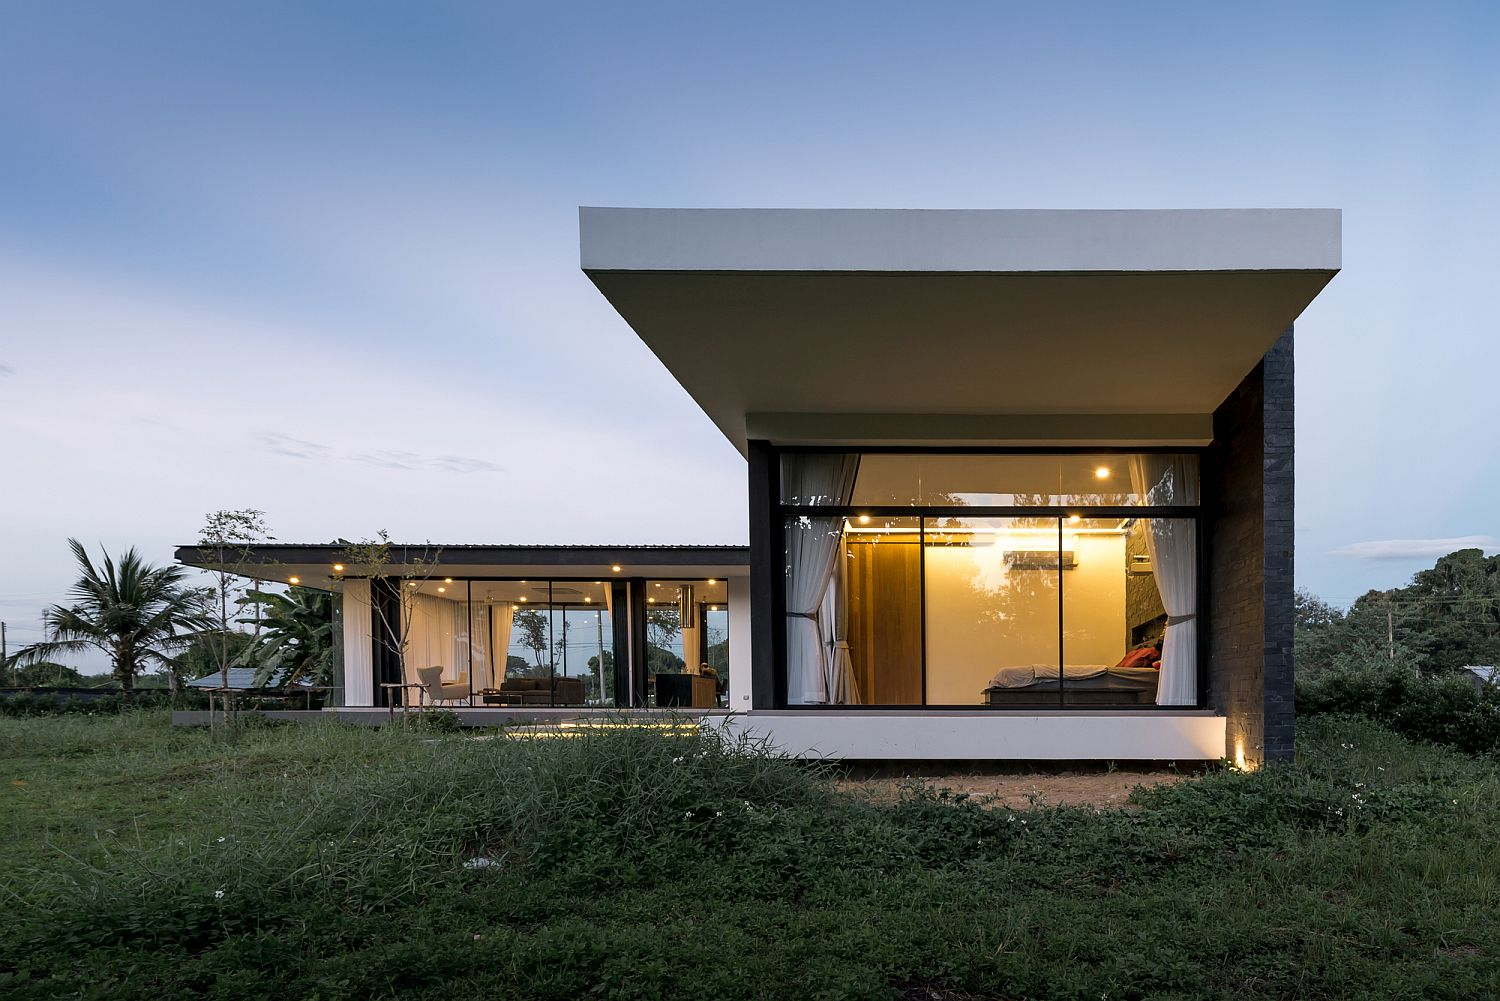 Glass walls connect the exterior with the landscape outside